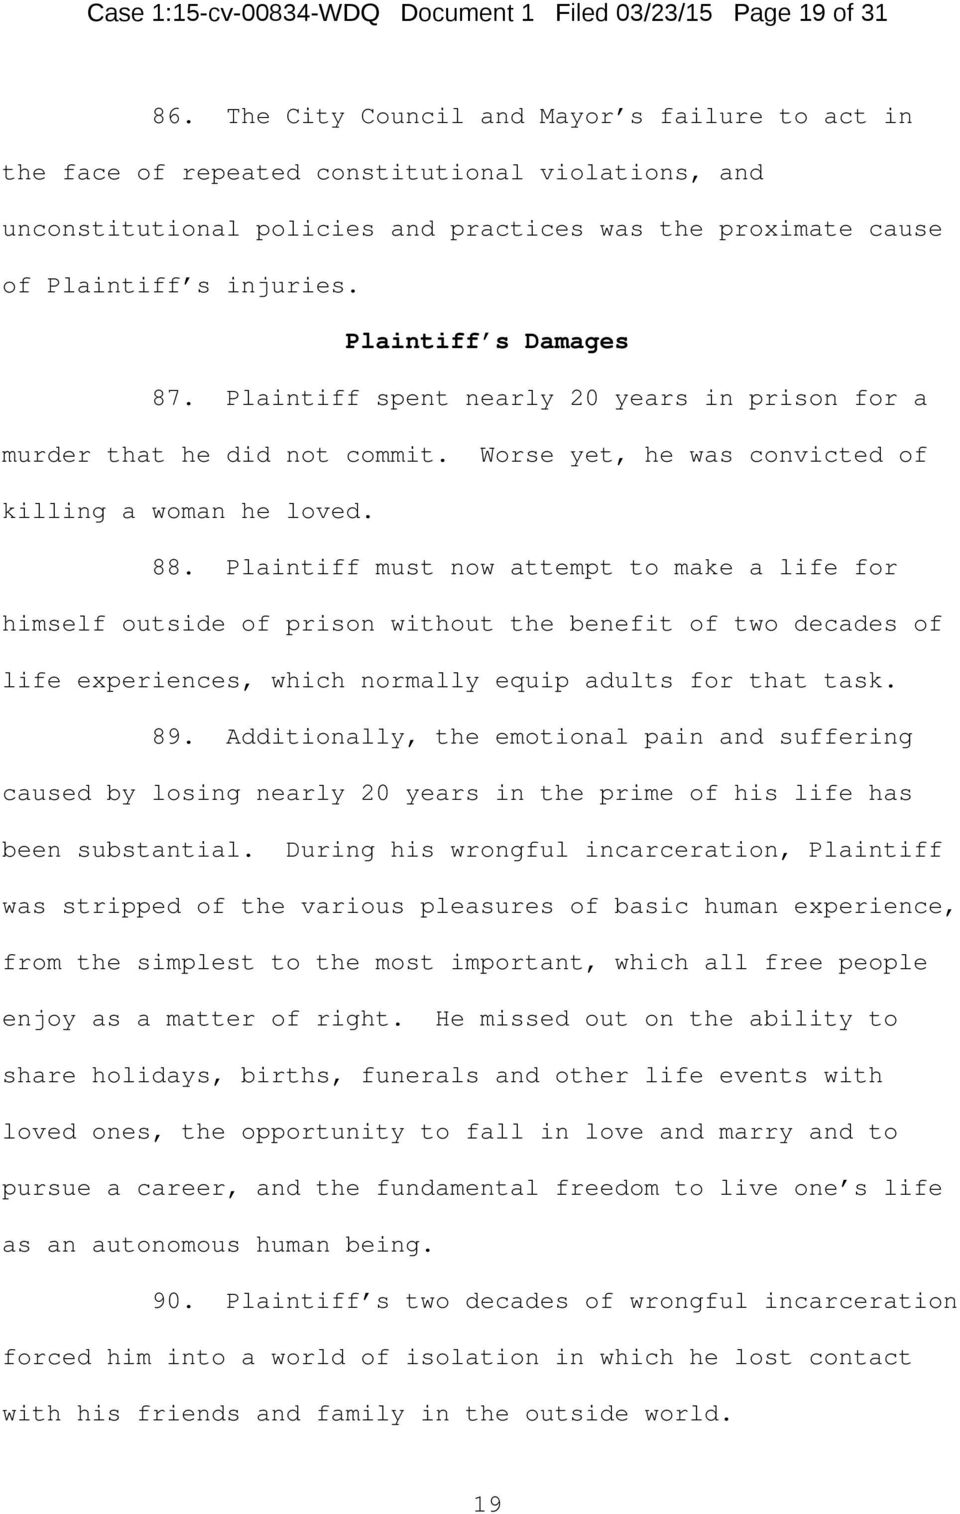 Plaintiff s Damages 87. Plaintiff spent nearly 20 years in prison for a murder that he did not commit. Worse yet, he was convicted of killing a woman he loved. 88.